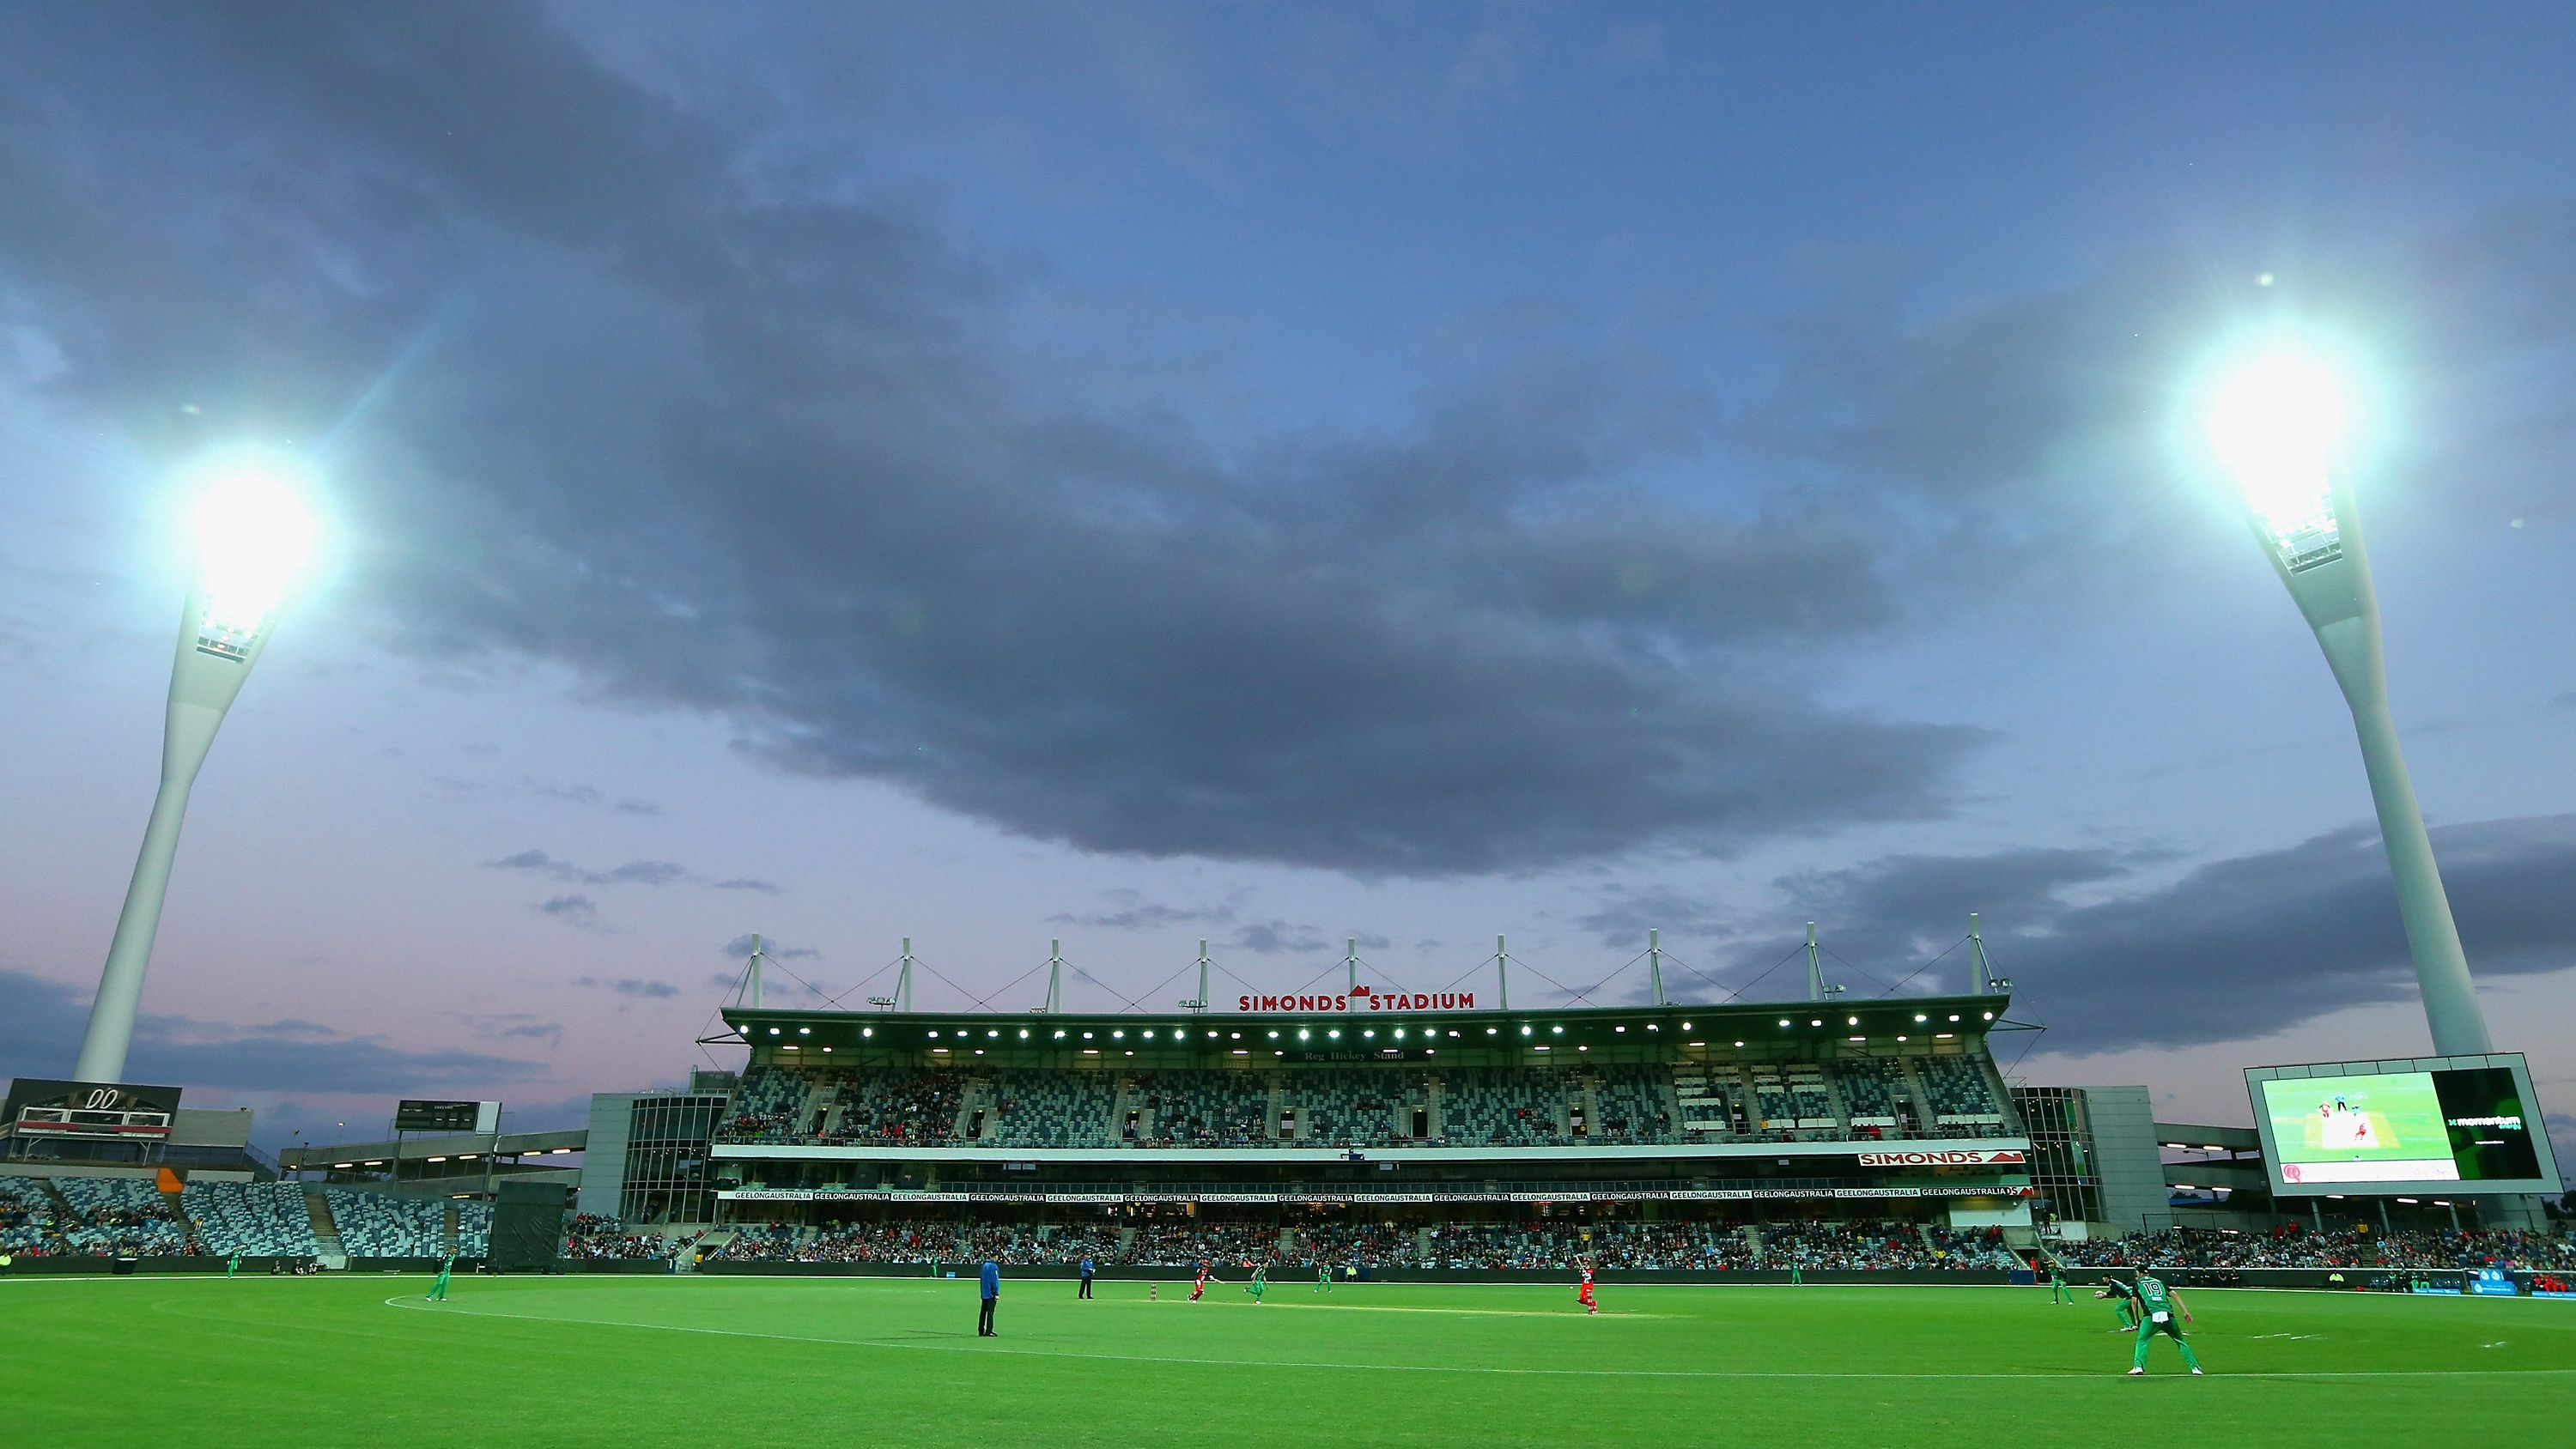 Consider Geelong's Kardinia Park for New Year Test, says leg-spin legend Shane Warne